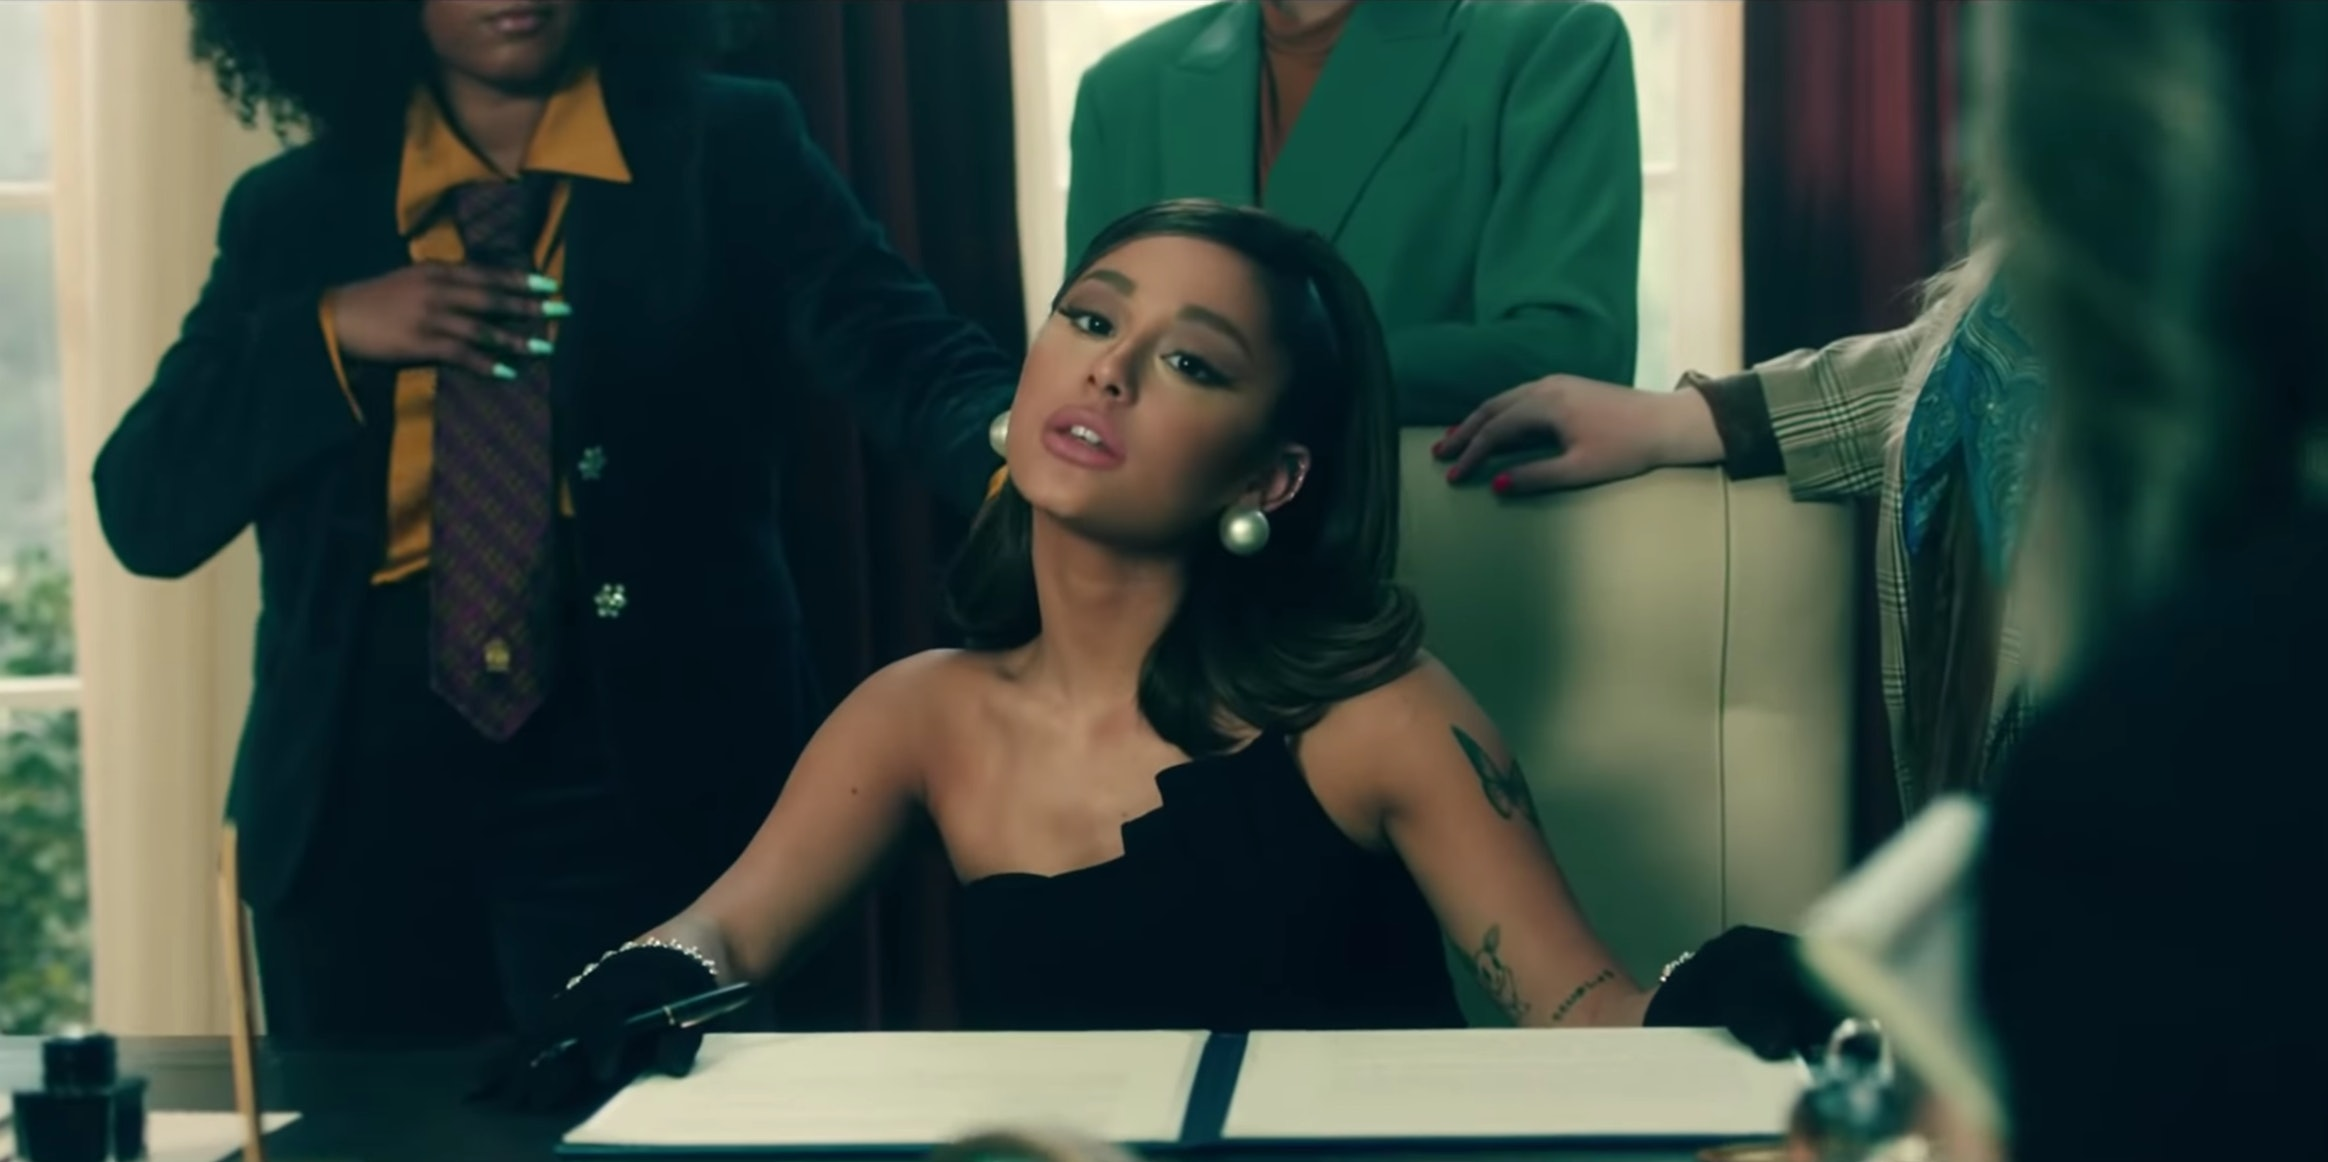 Ariana Grande's 'Positions' Video Has Fans Desperate To Know More